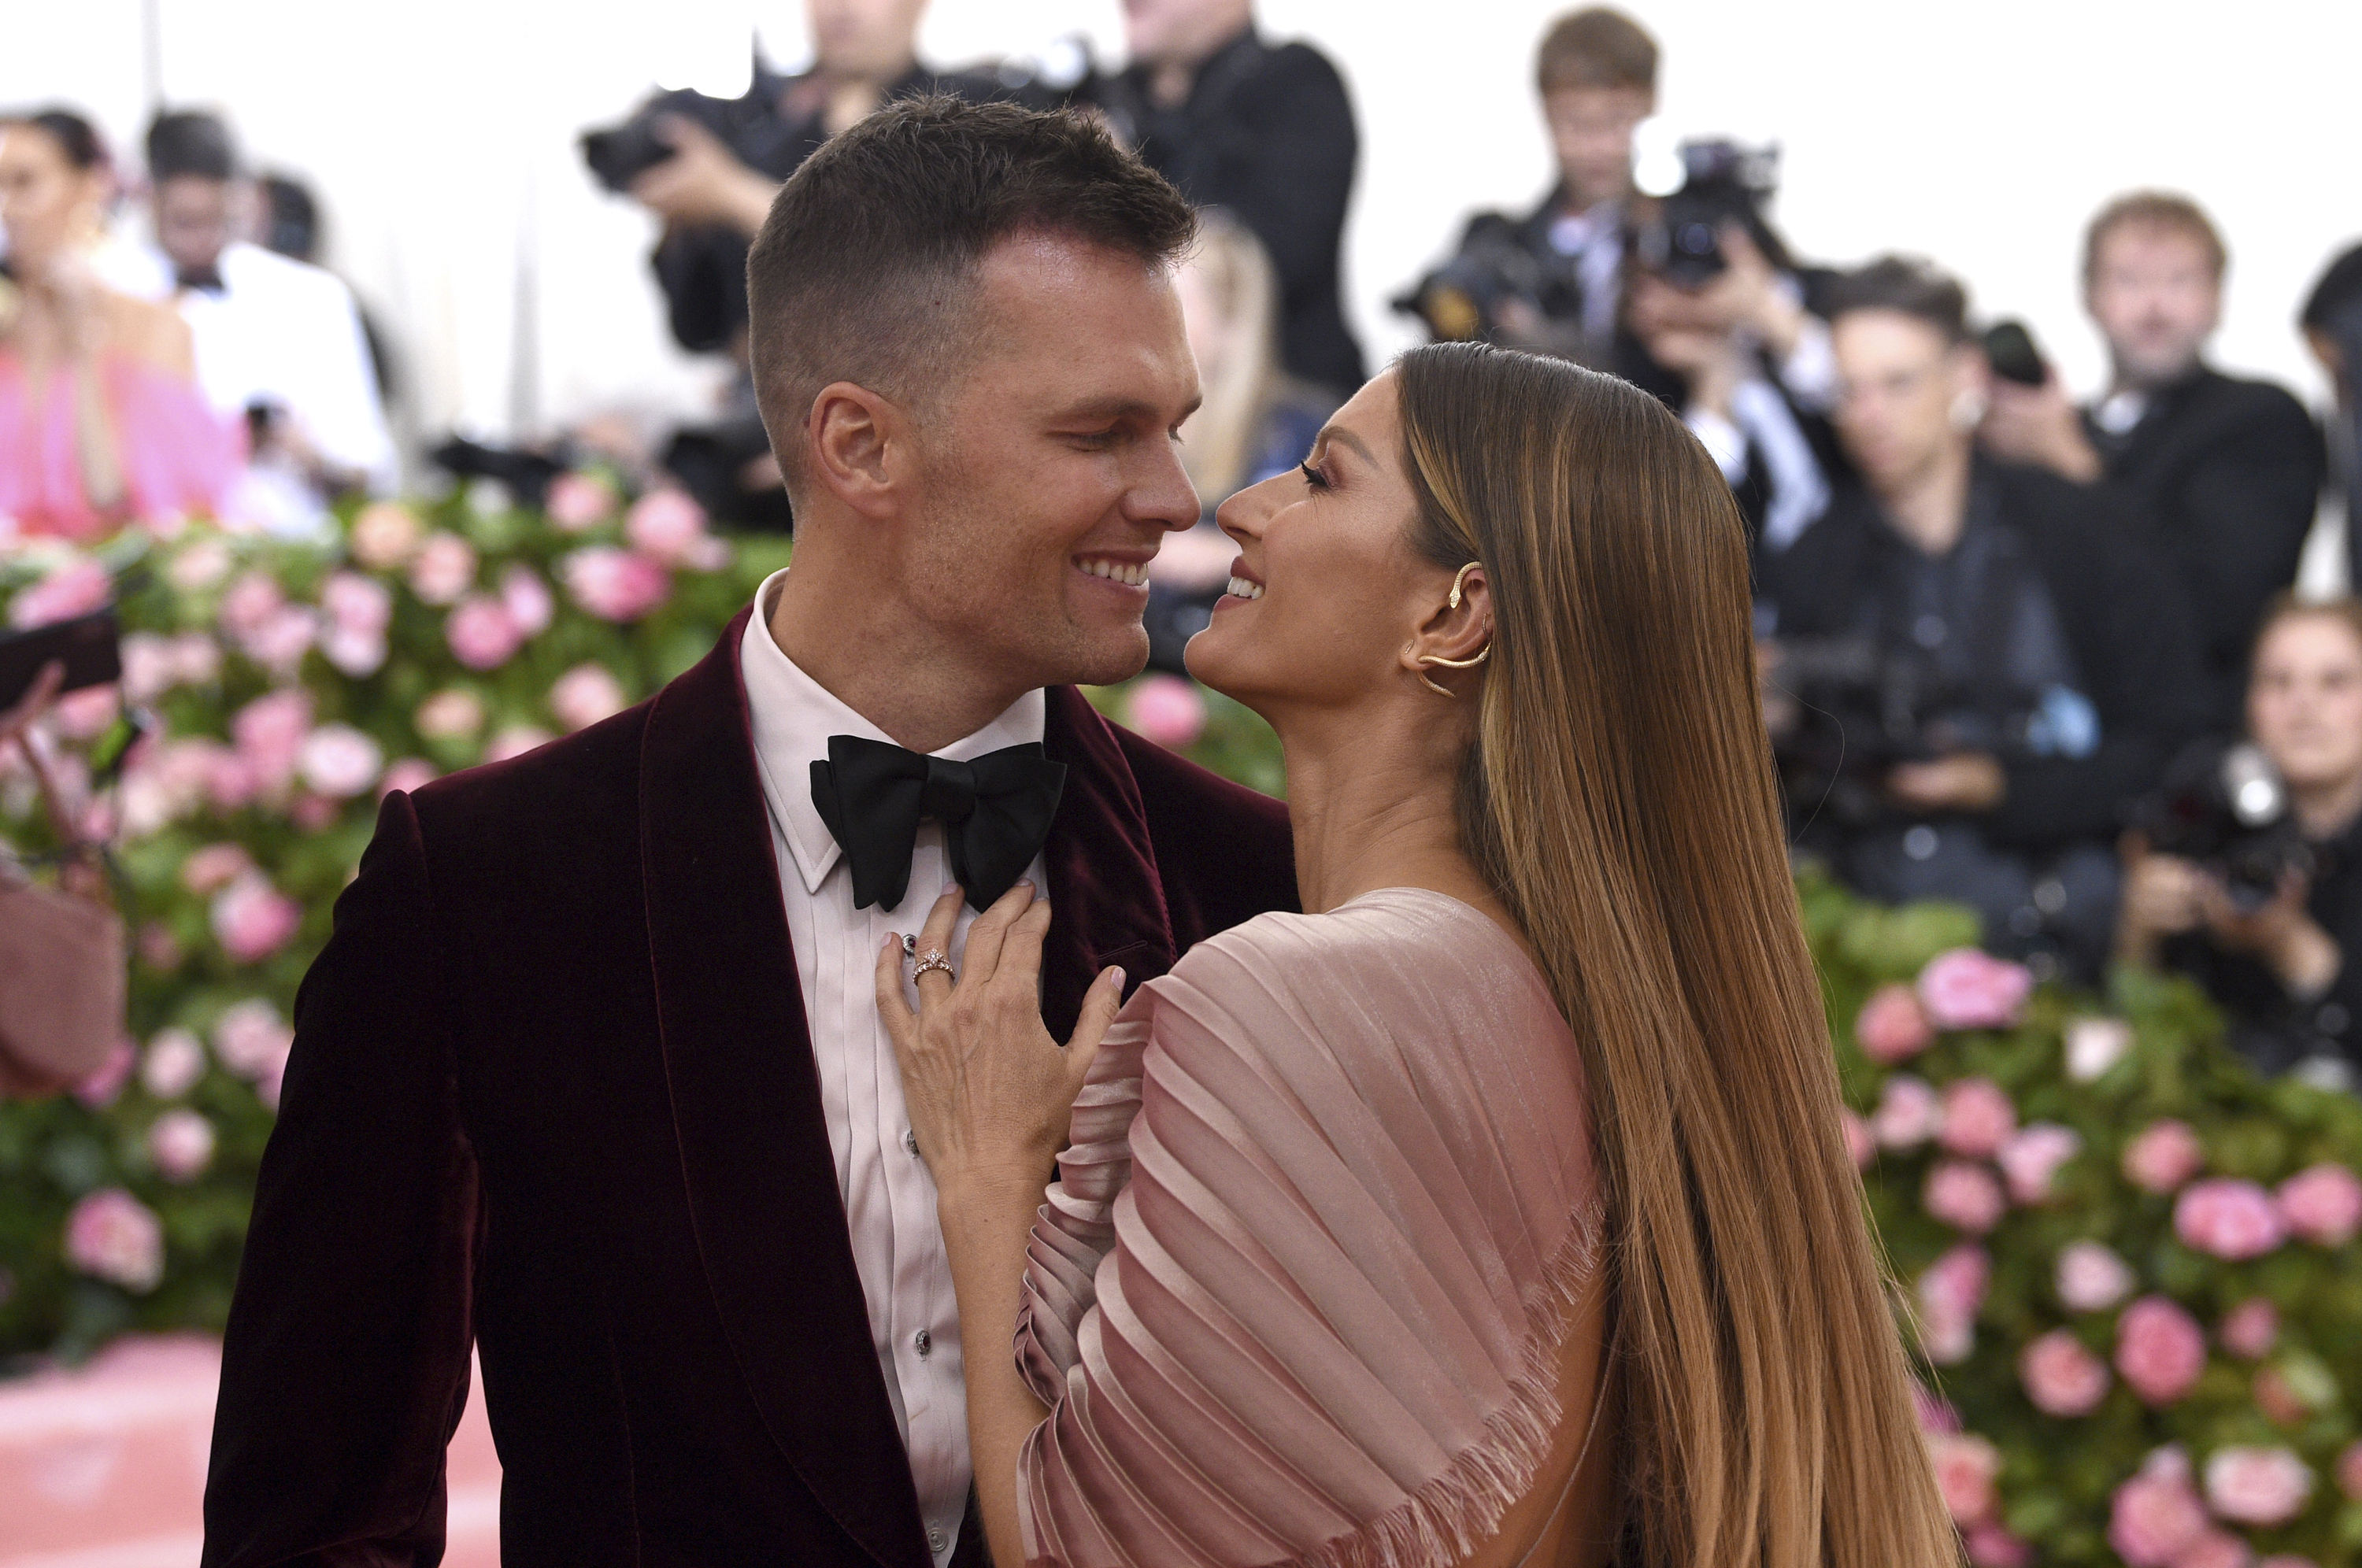 Tom Brady Reveals How He And Gisele Bundchen Balance Work And Marriage The Boston Globe